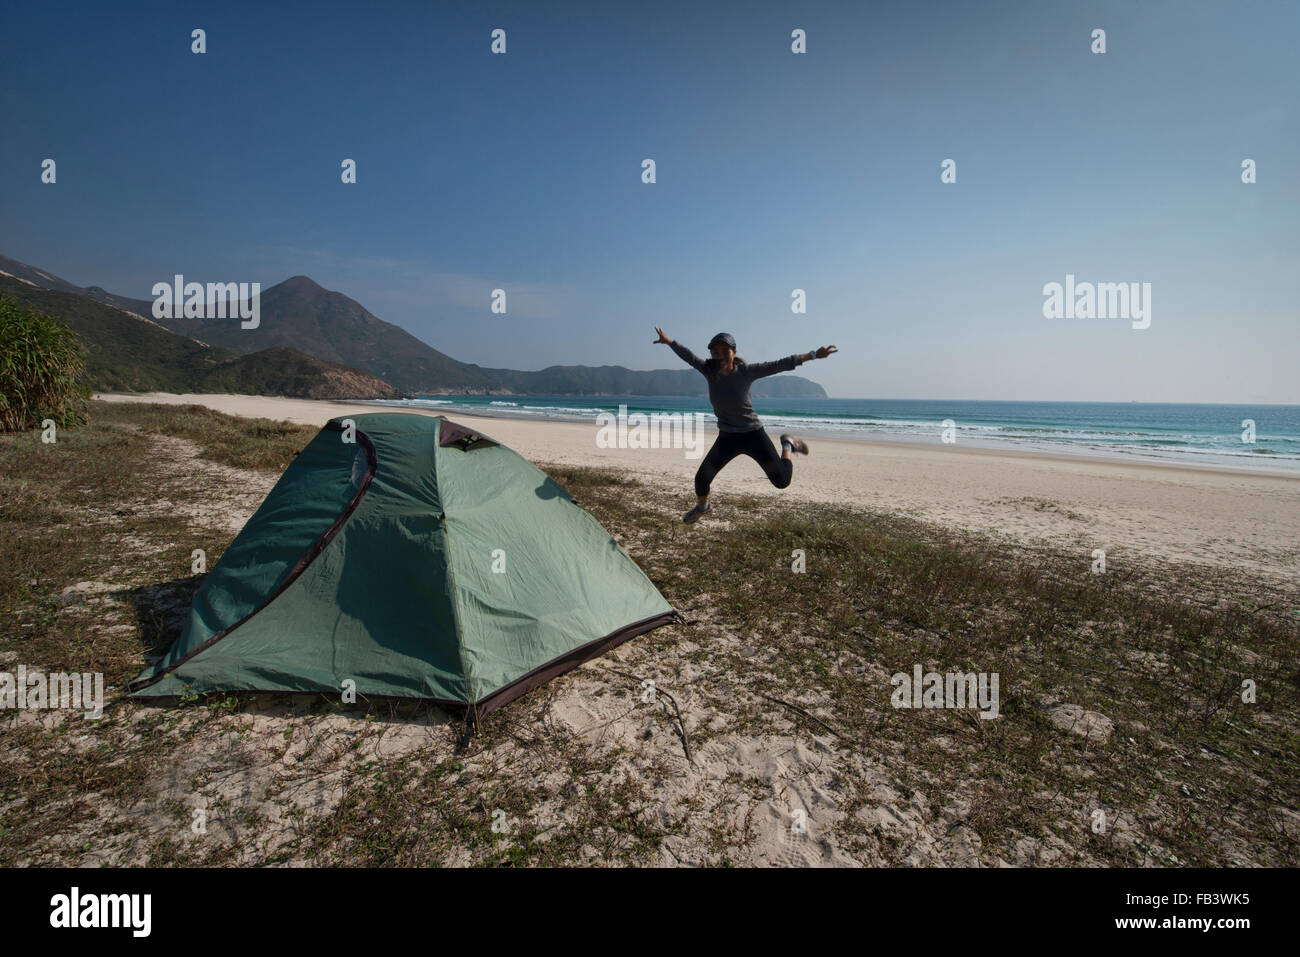 Camping à vide Tai Long Wan (Big Wave Bay), plage de Sai Kung, Hong Kong Photo Stock